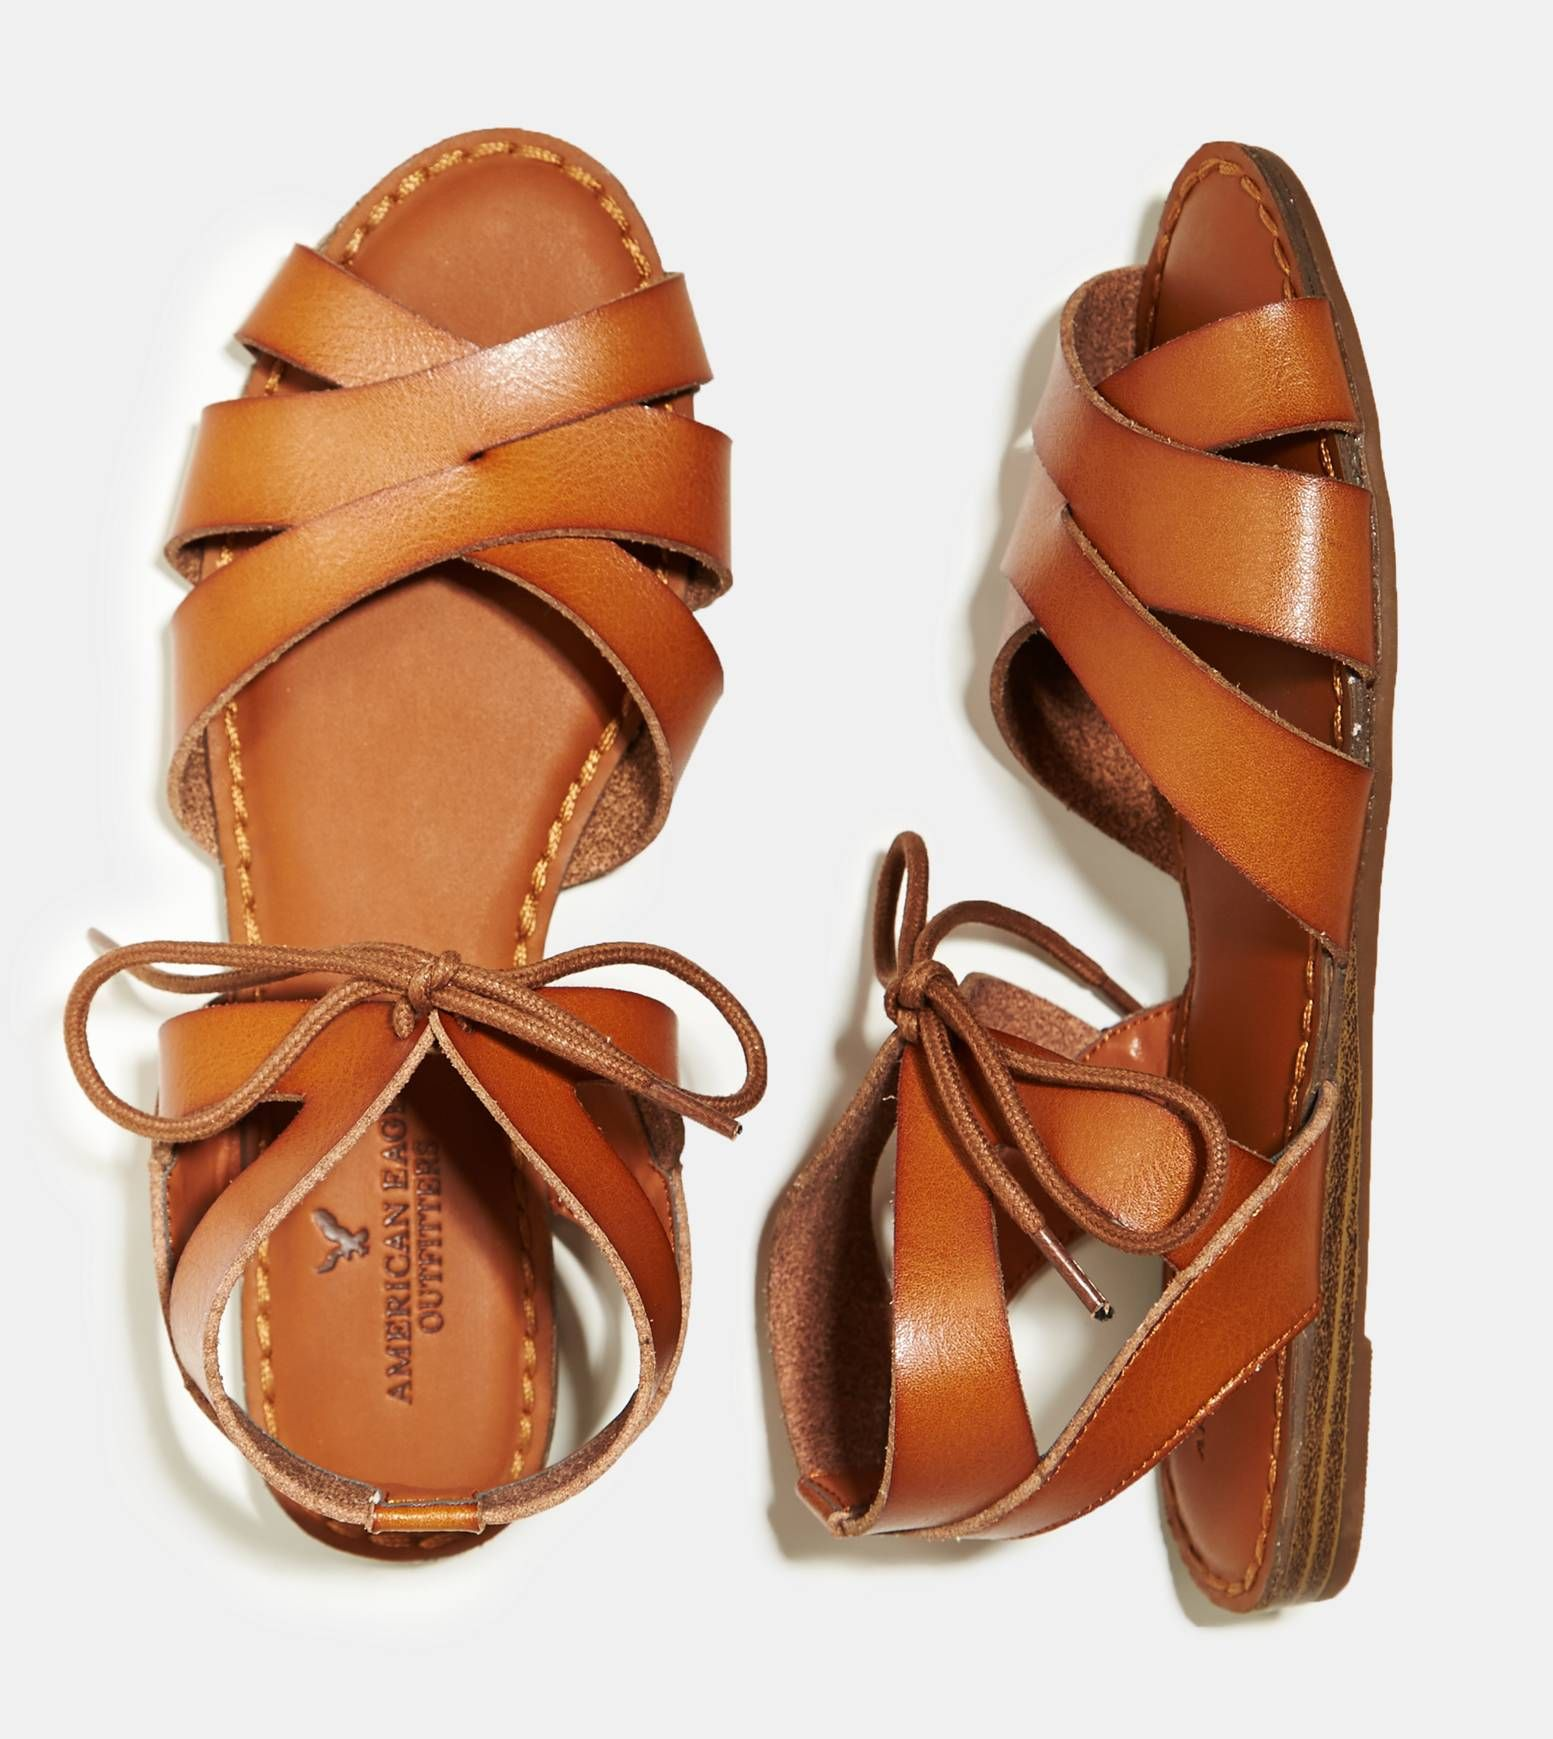 Tan Aeo Tie Front Sandal Clothespin Shoes Crazy Shoes